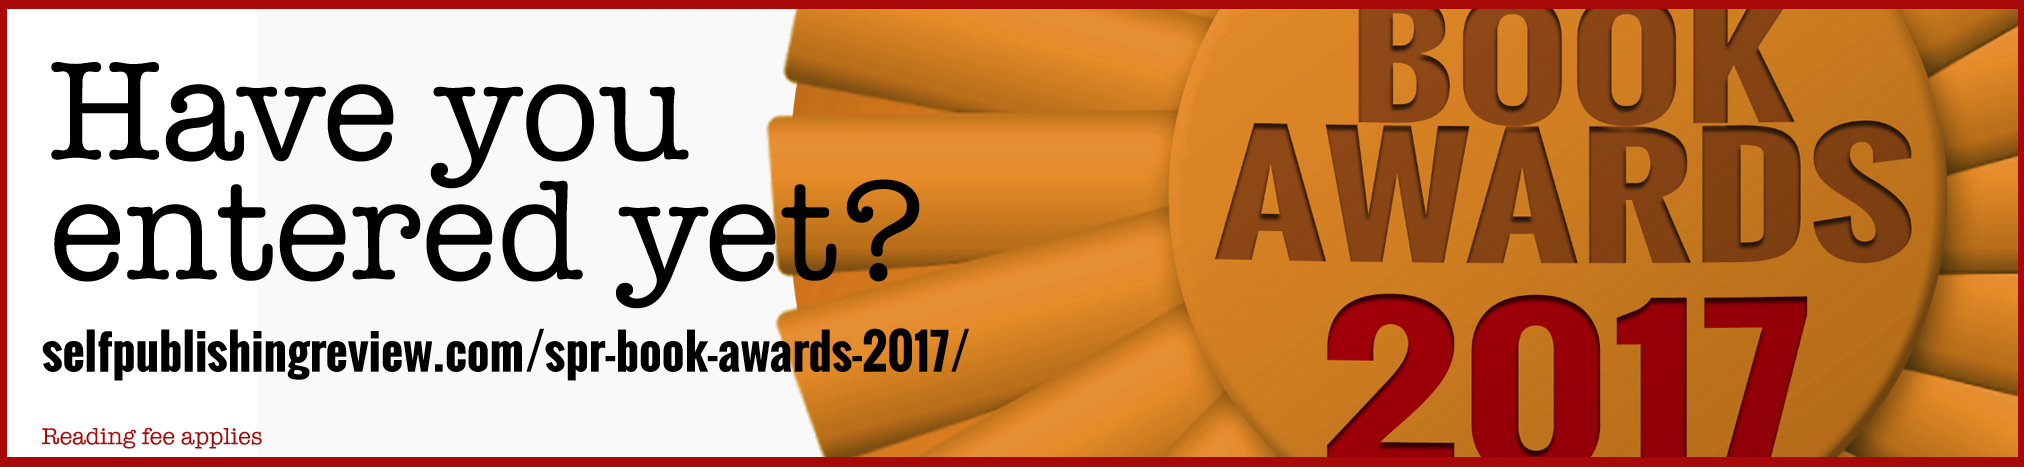 SPR AWARDS 2017 OPEN FOR SUBMISSIONS!